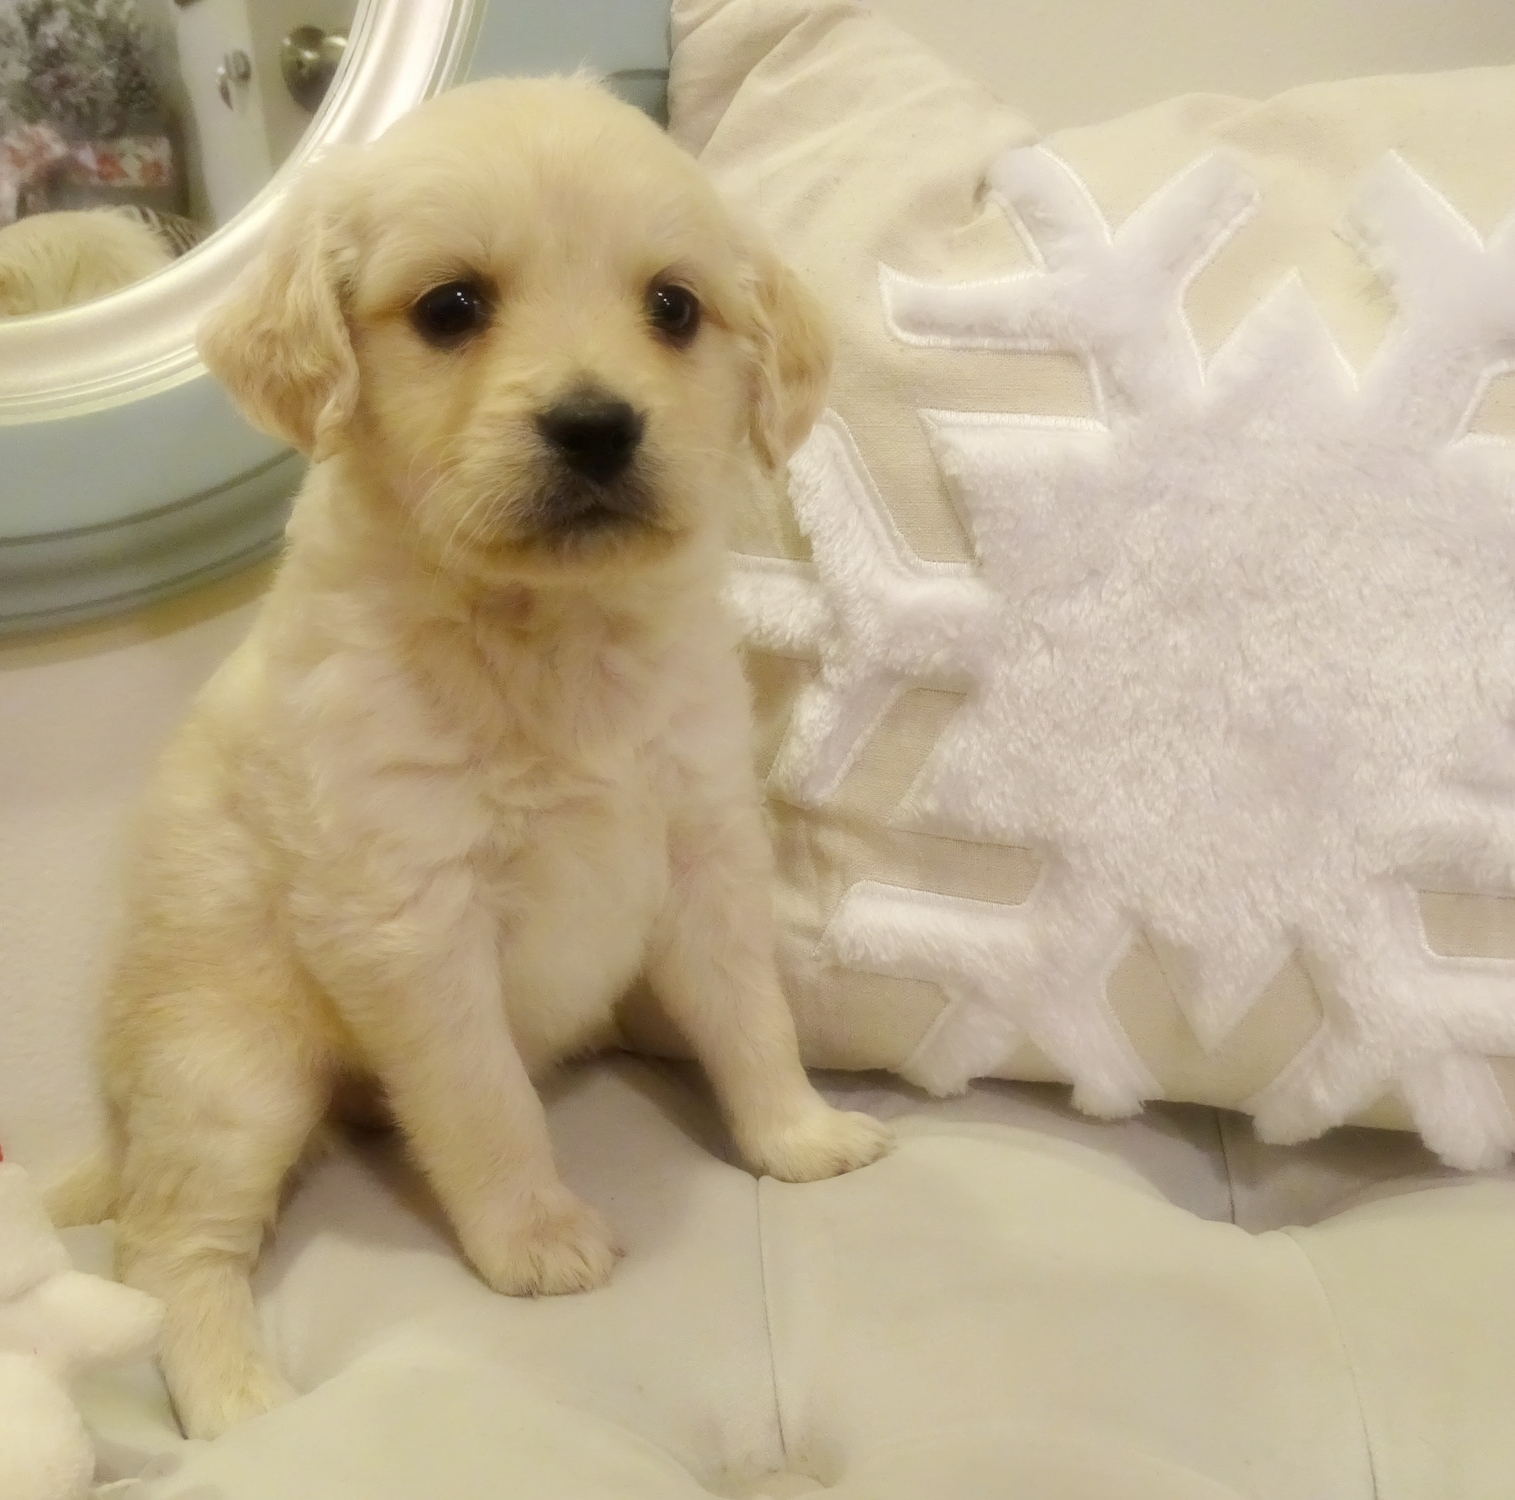 This is Frenchy, a 5-week-old cream female with a straight golden retriever coat.She weighs 3 lbs 1 oz. She is charting 17 lbs full grown. She scored mostly 3's on her Volhard aptitude test. She will be going to live with my brother Ryan and his girlfriend Nikolina in Sandy, Utah! Look for puppies from her down the road!